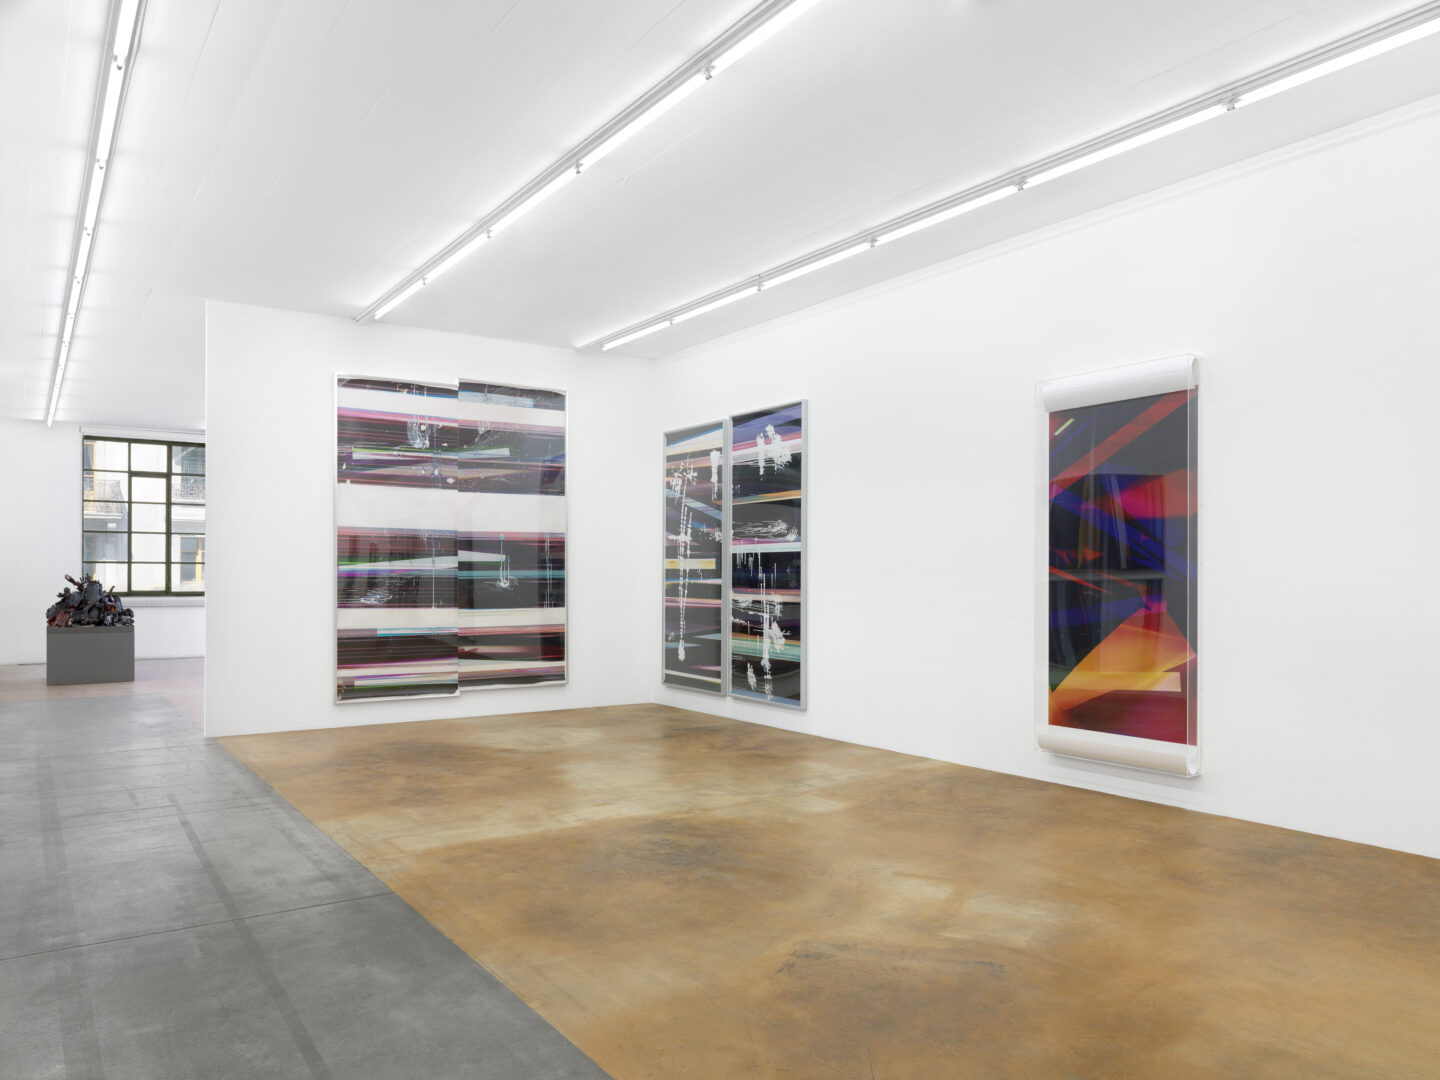 Exhibition View Walead Beshty Soloshow at MAMCO, Geneva / Photo: Annik Wetter / Courtesy: the artist